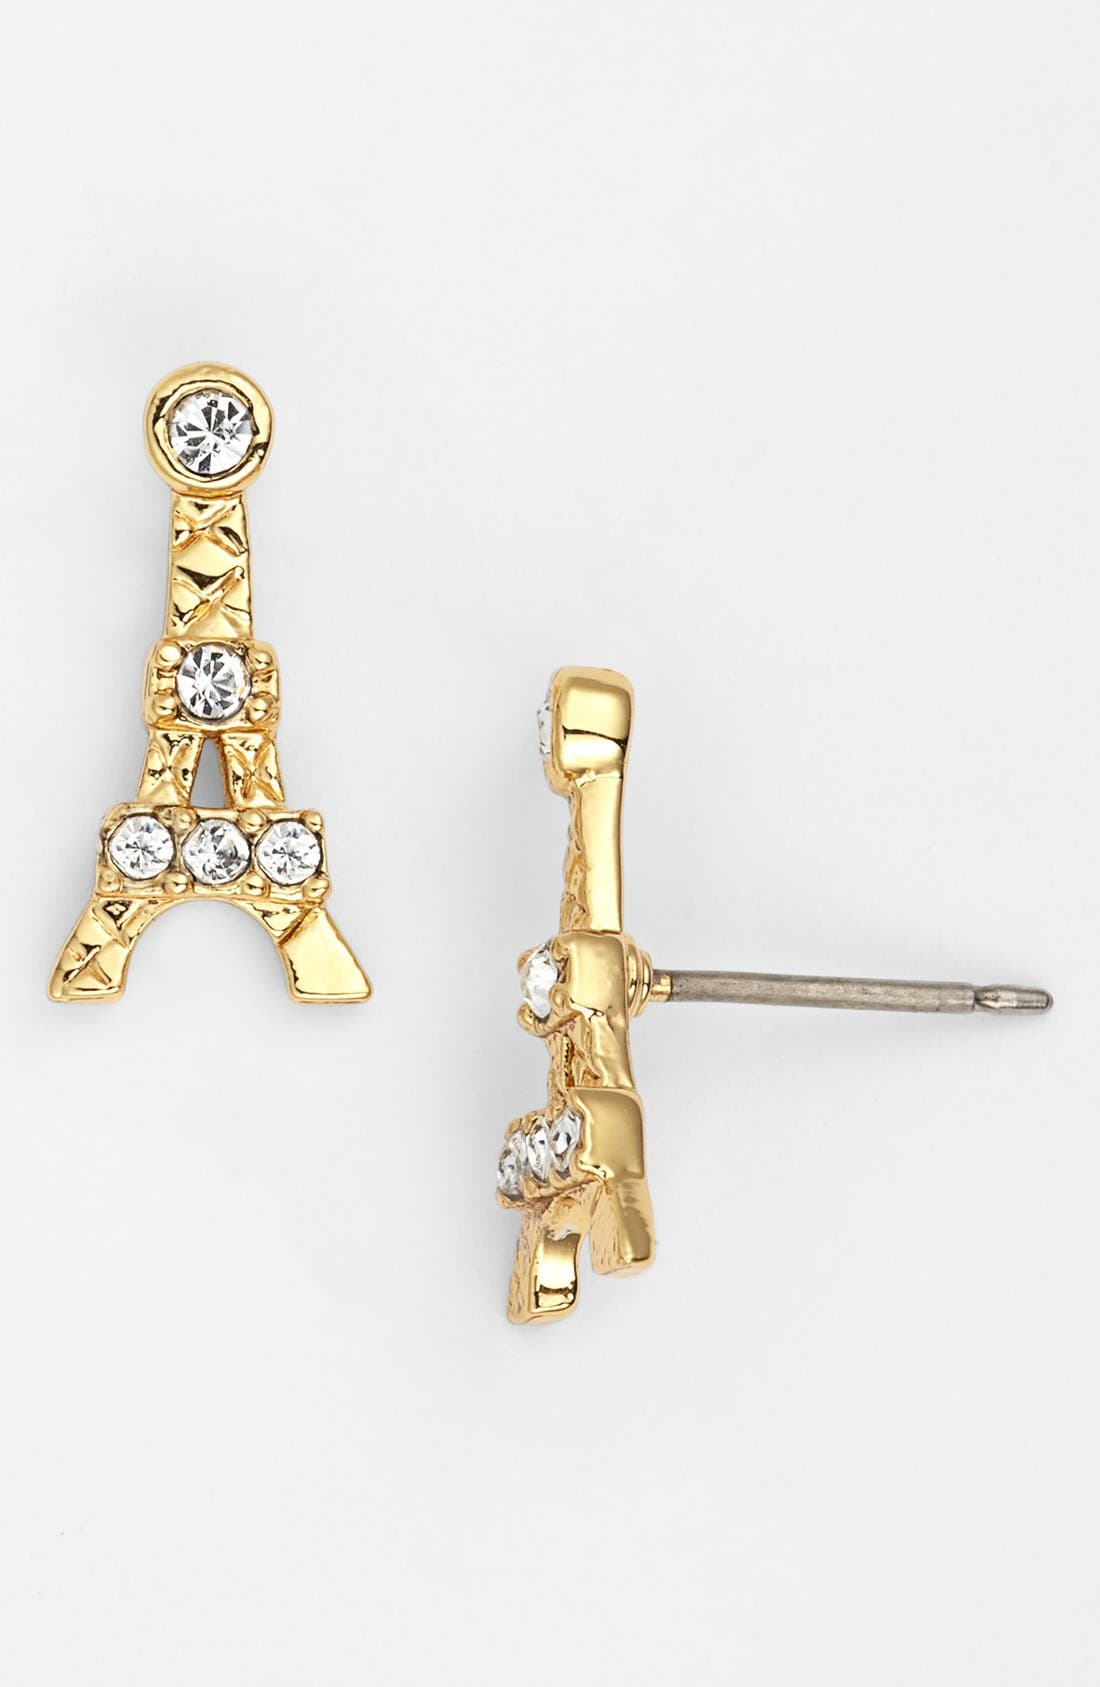 Main Image - Juicy Couture Eiffel Tower Stud Earrings